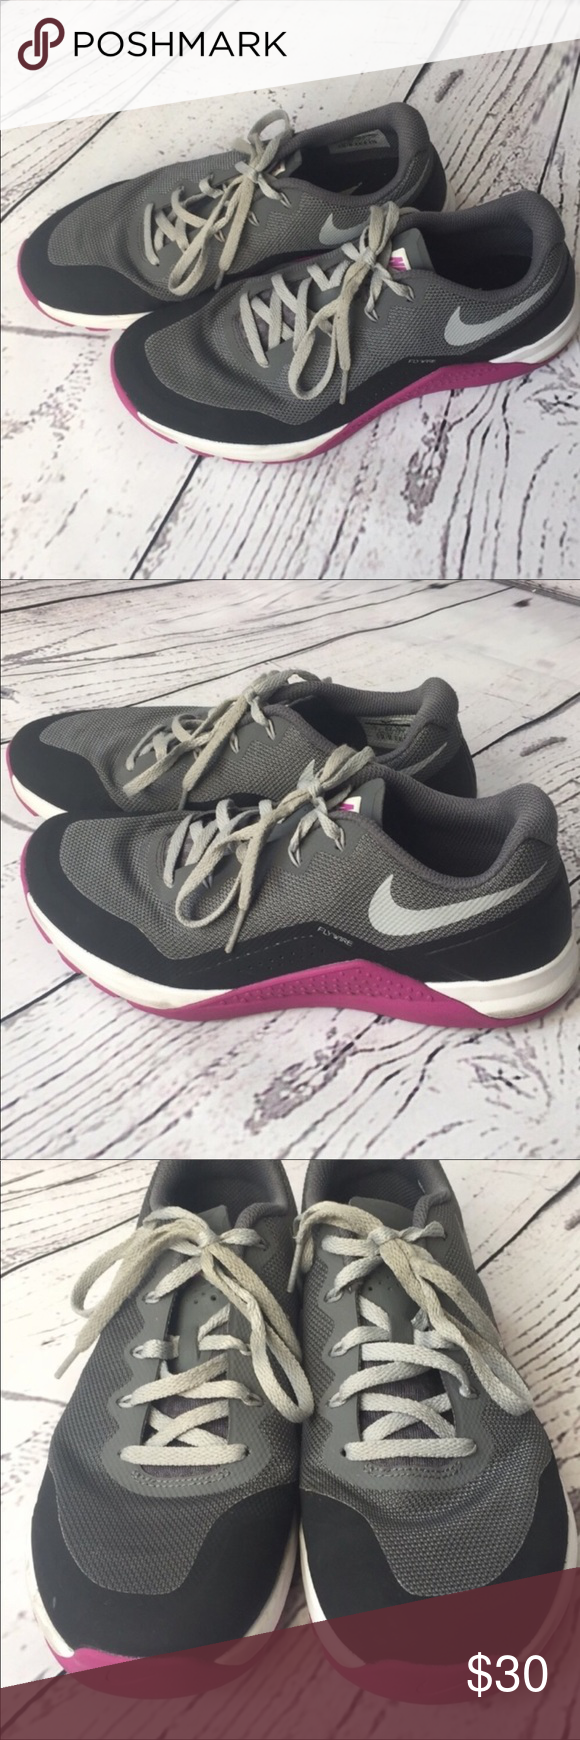 new style 89231 36fe2 EUC Nike Training Flywire training sneakers 9 EUC Nike Training Flywire  purple, gray, and white training sneakers shoes size 9.